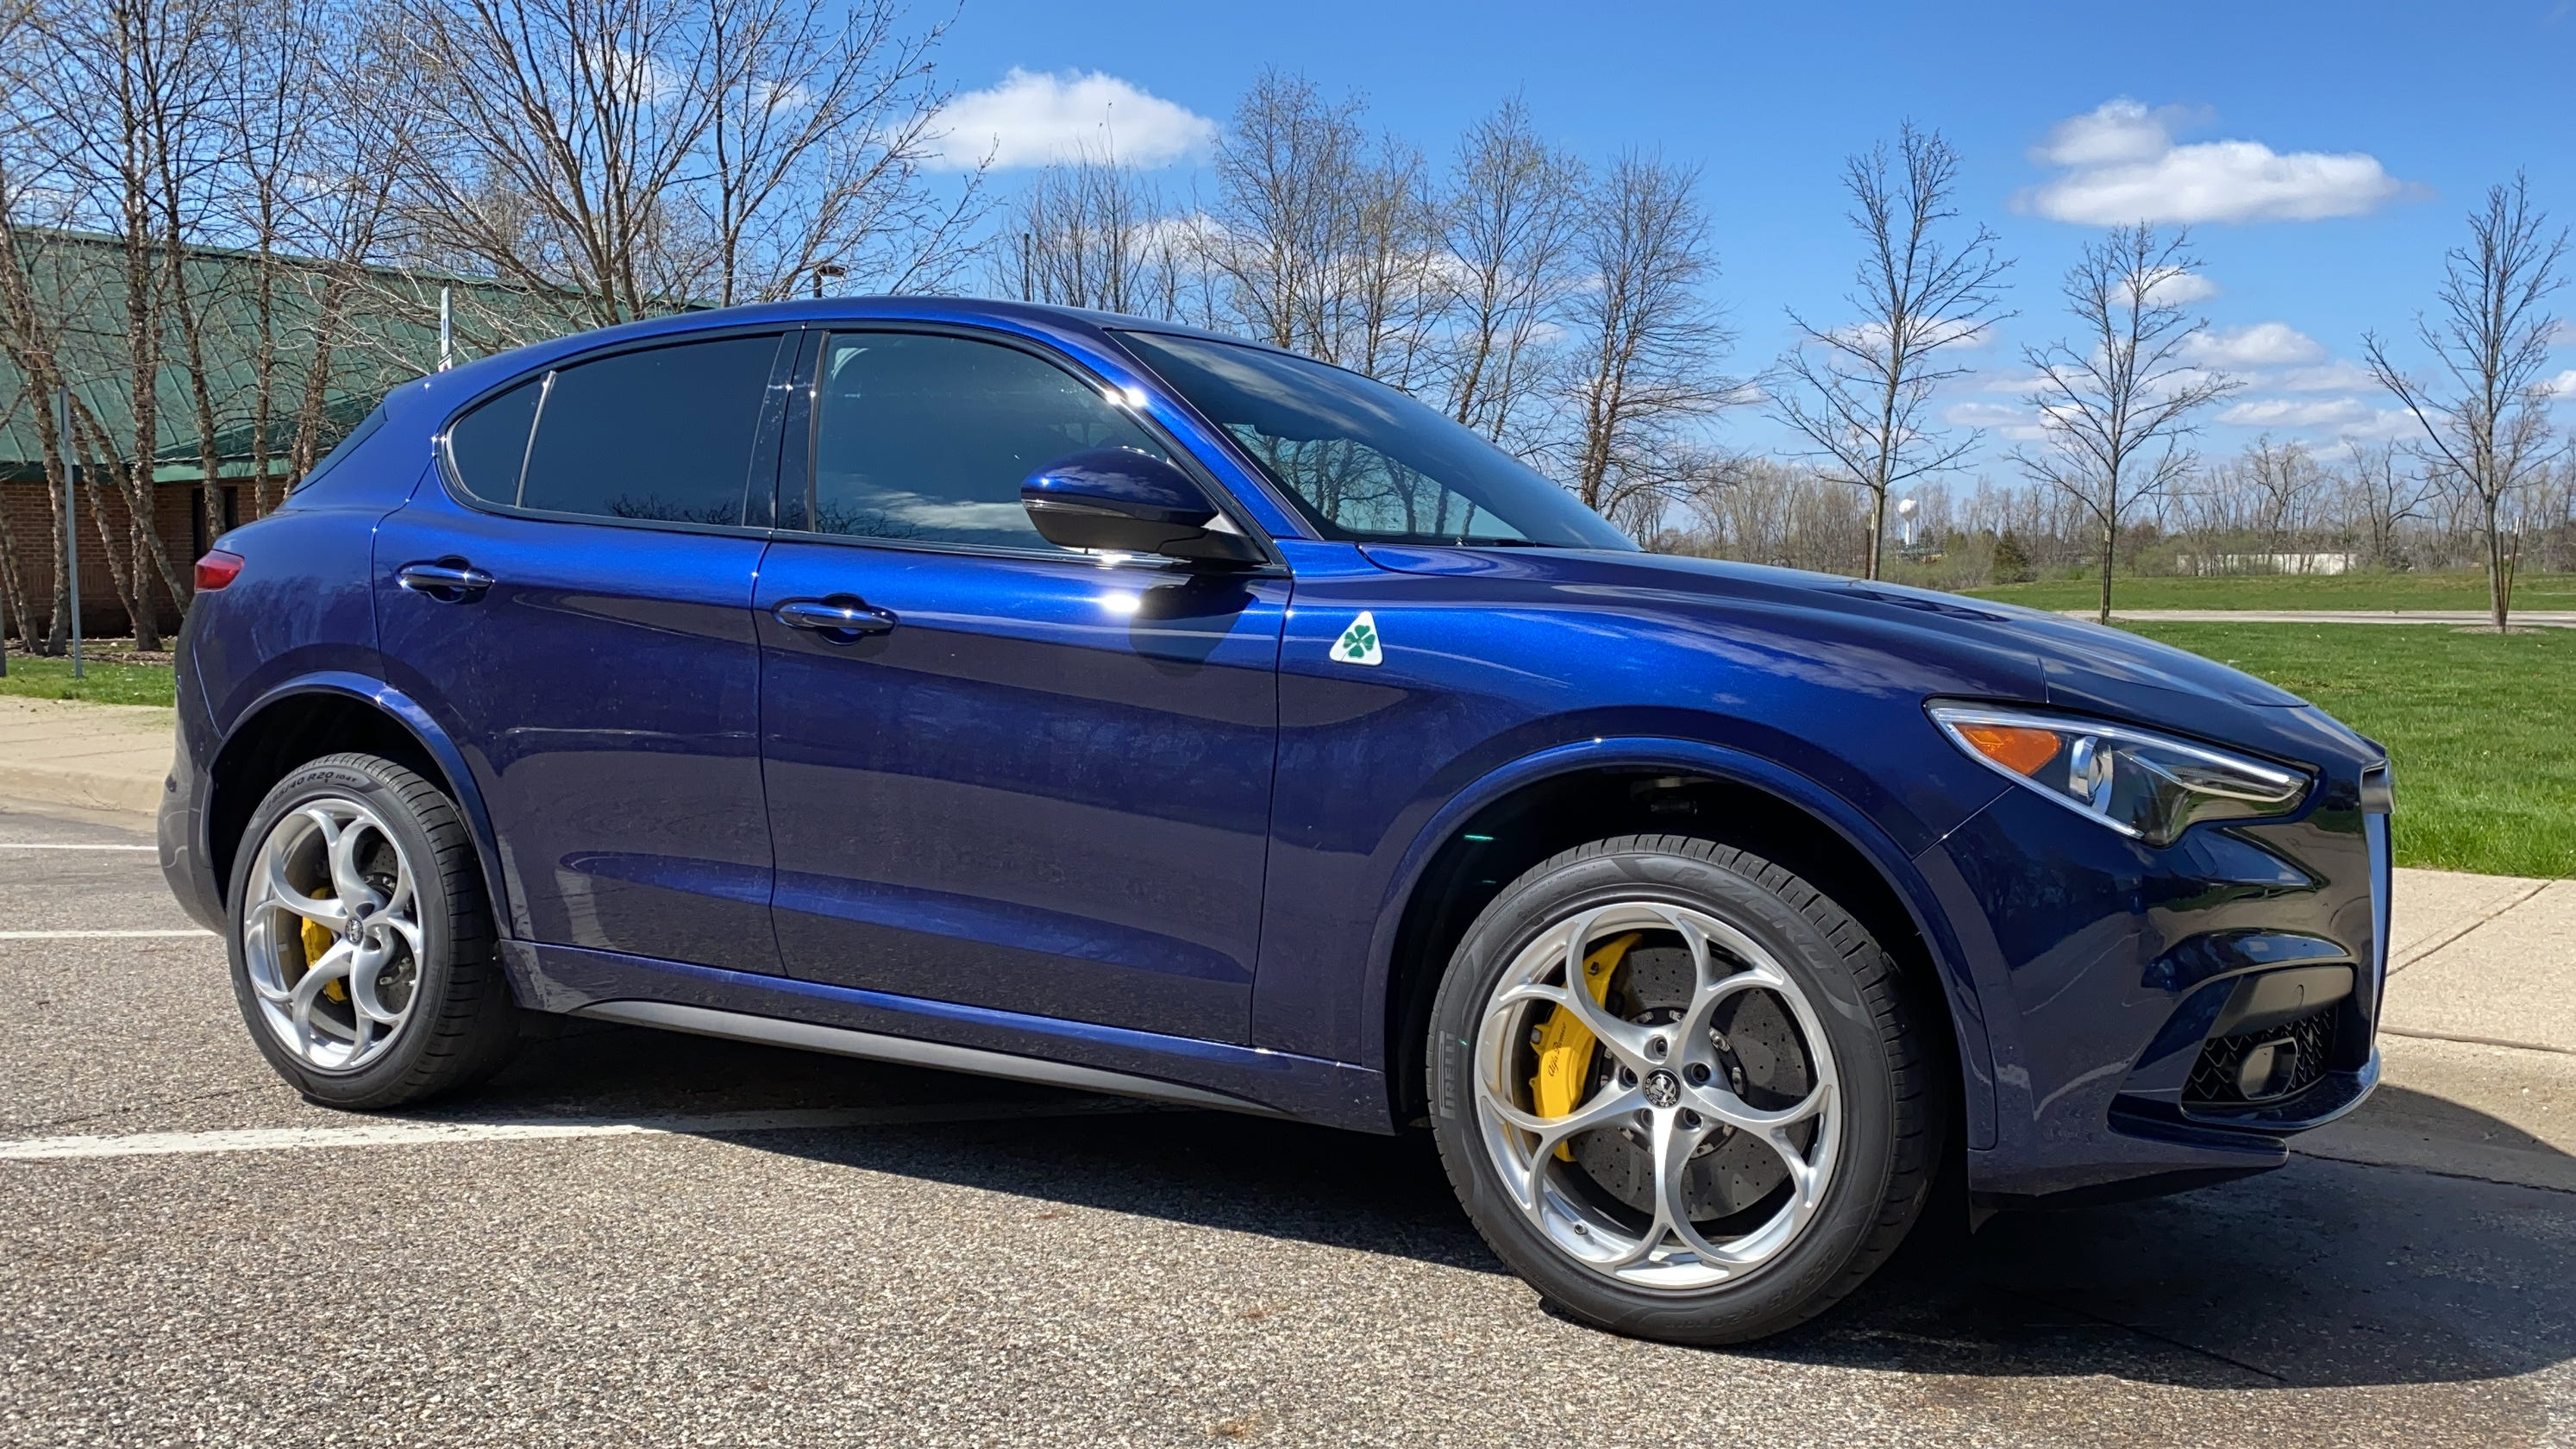 2020 Alfa Stelvio ditches the frustration, adds welcome new features